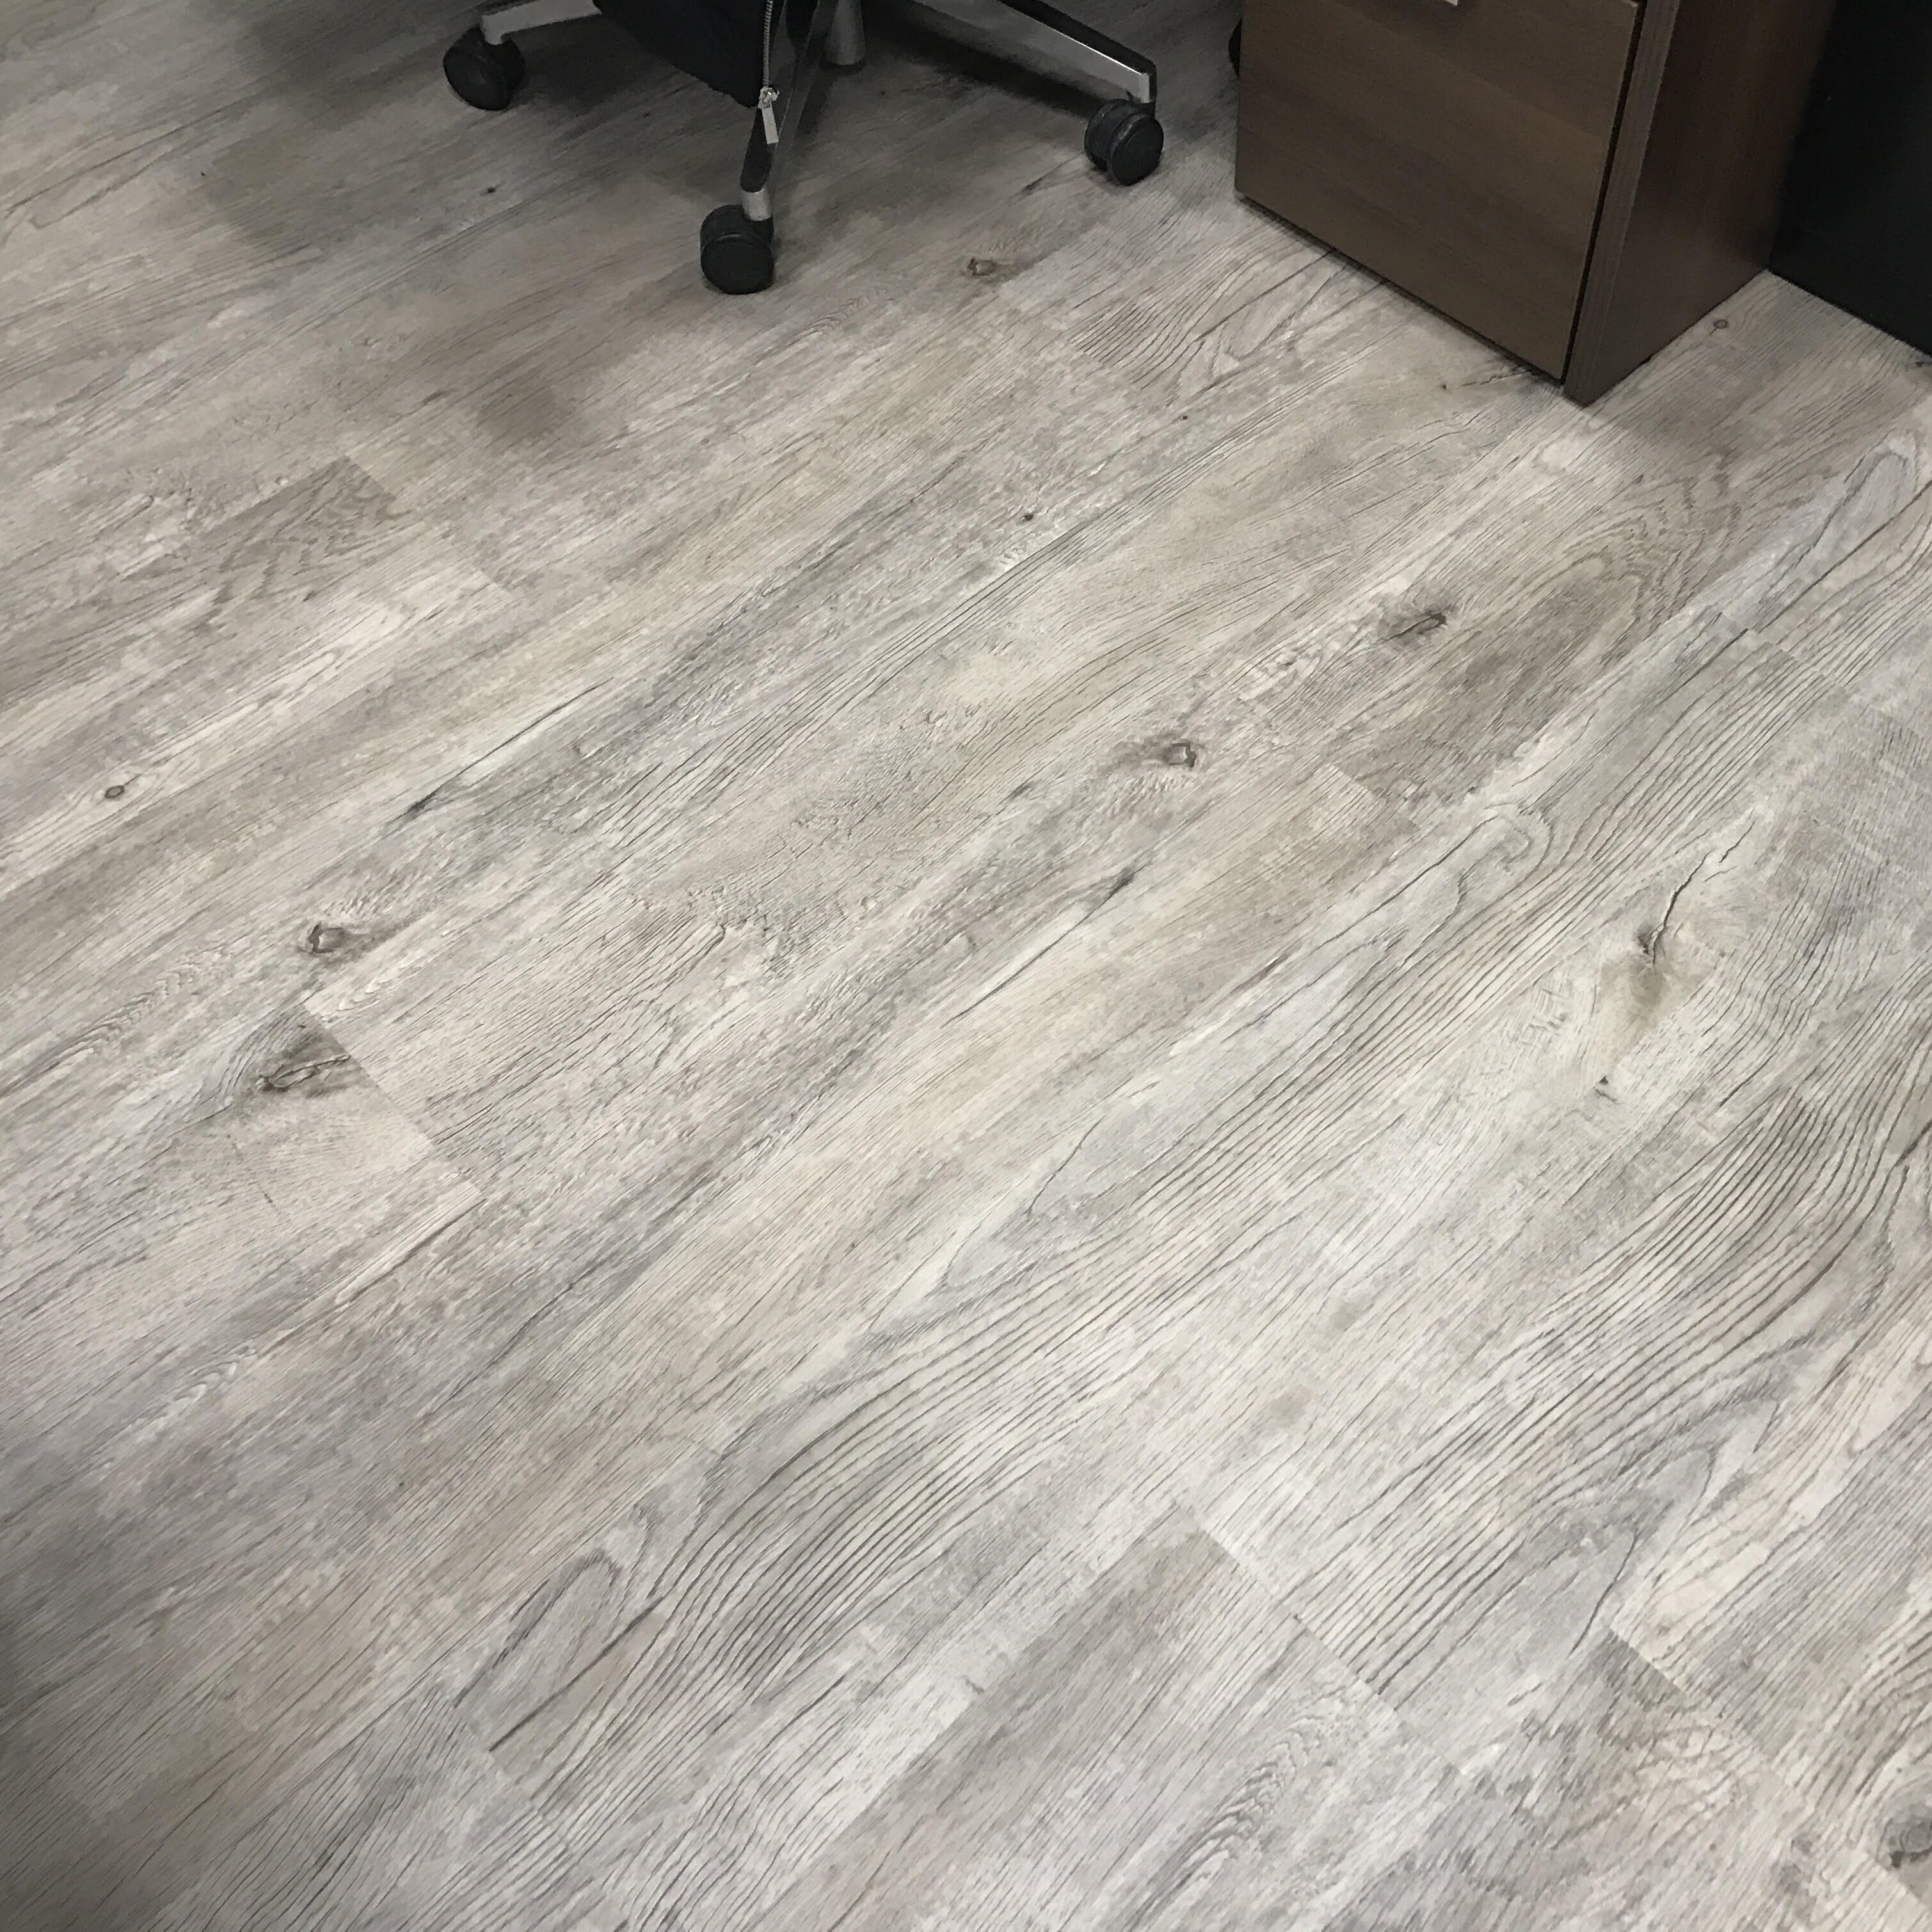 FloressenceSurfaces Loose Lay LVT X X Mm Luxury Vinyl Plank - What does lvt stand for in flooring